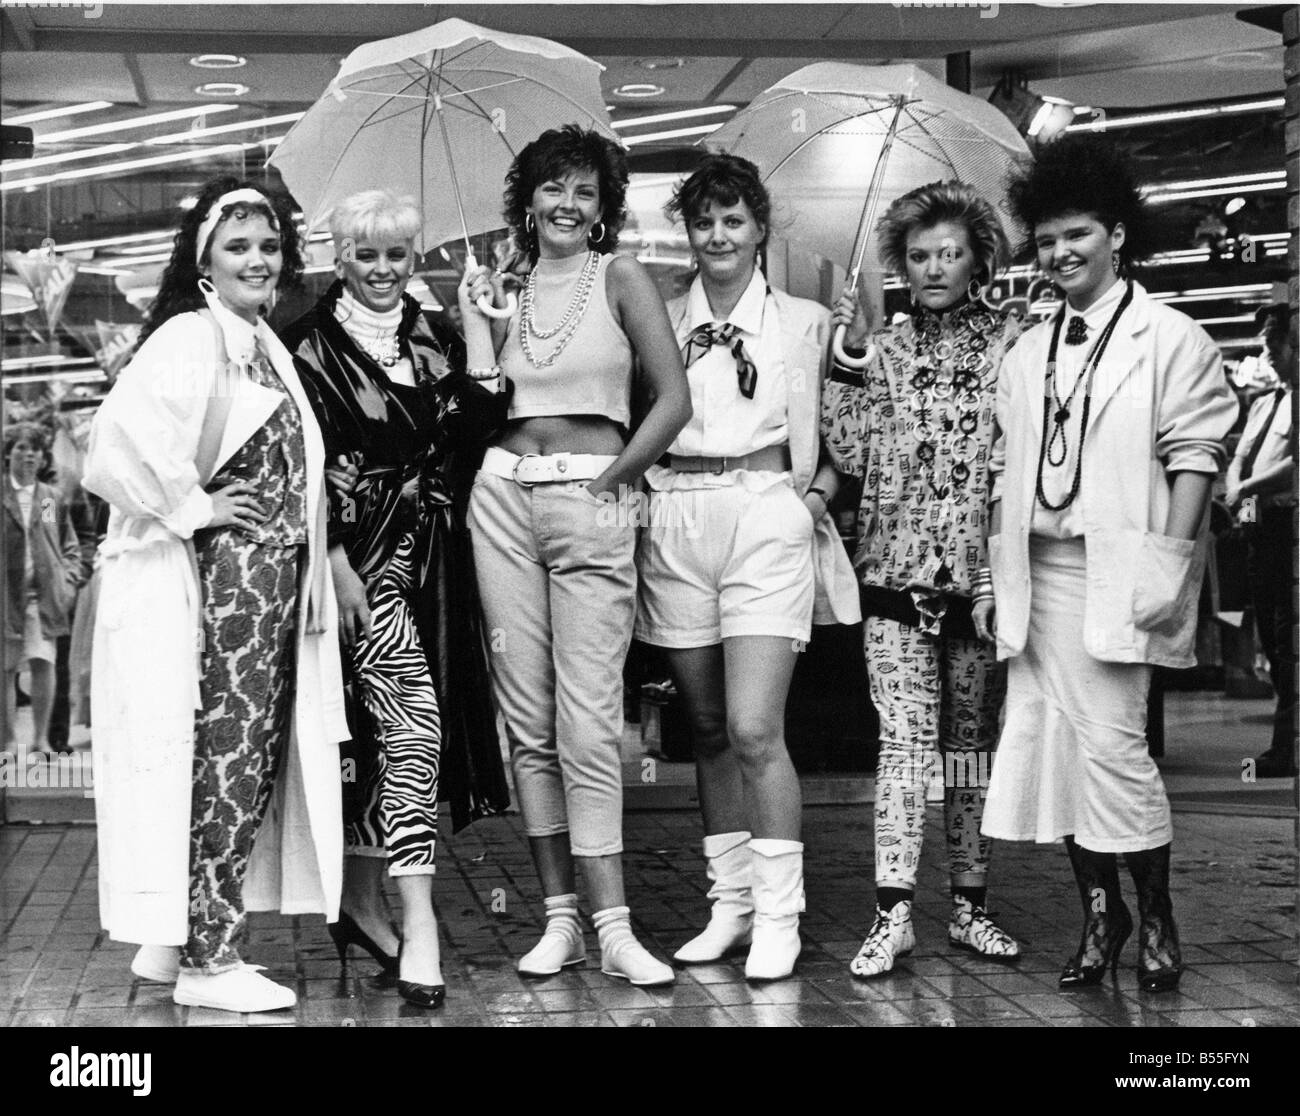 A group of models show of the latest eighties fashion - Stock Image